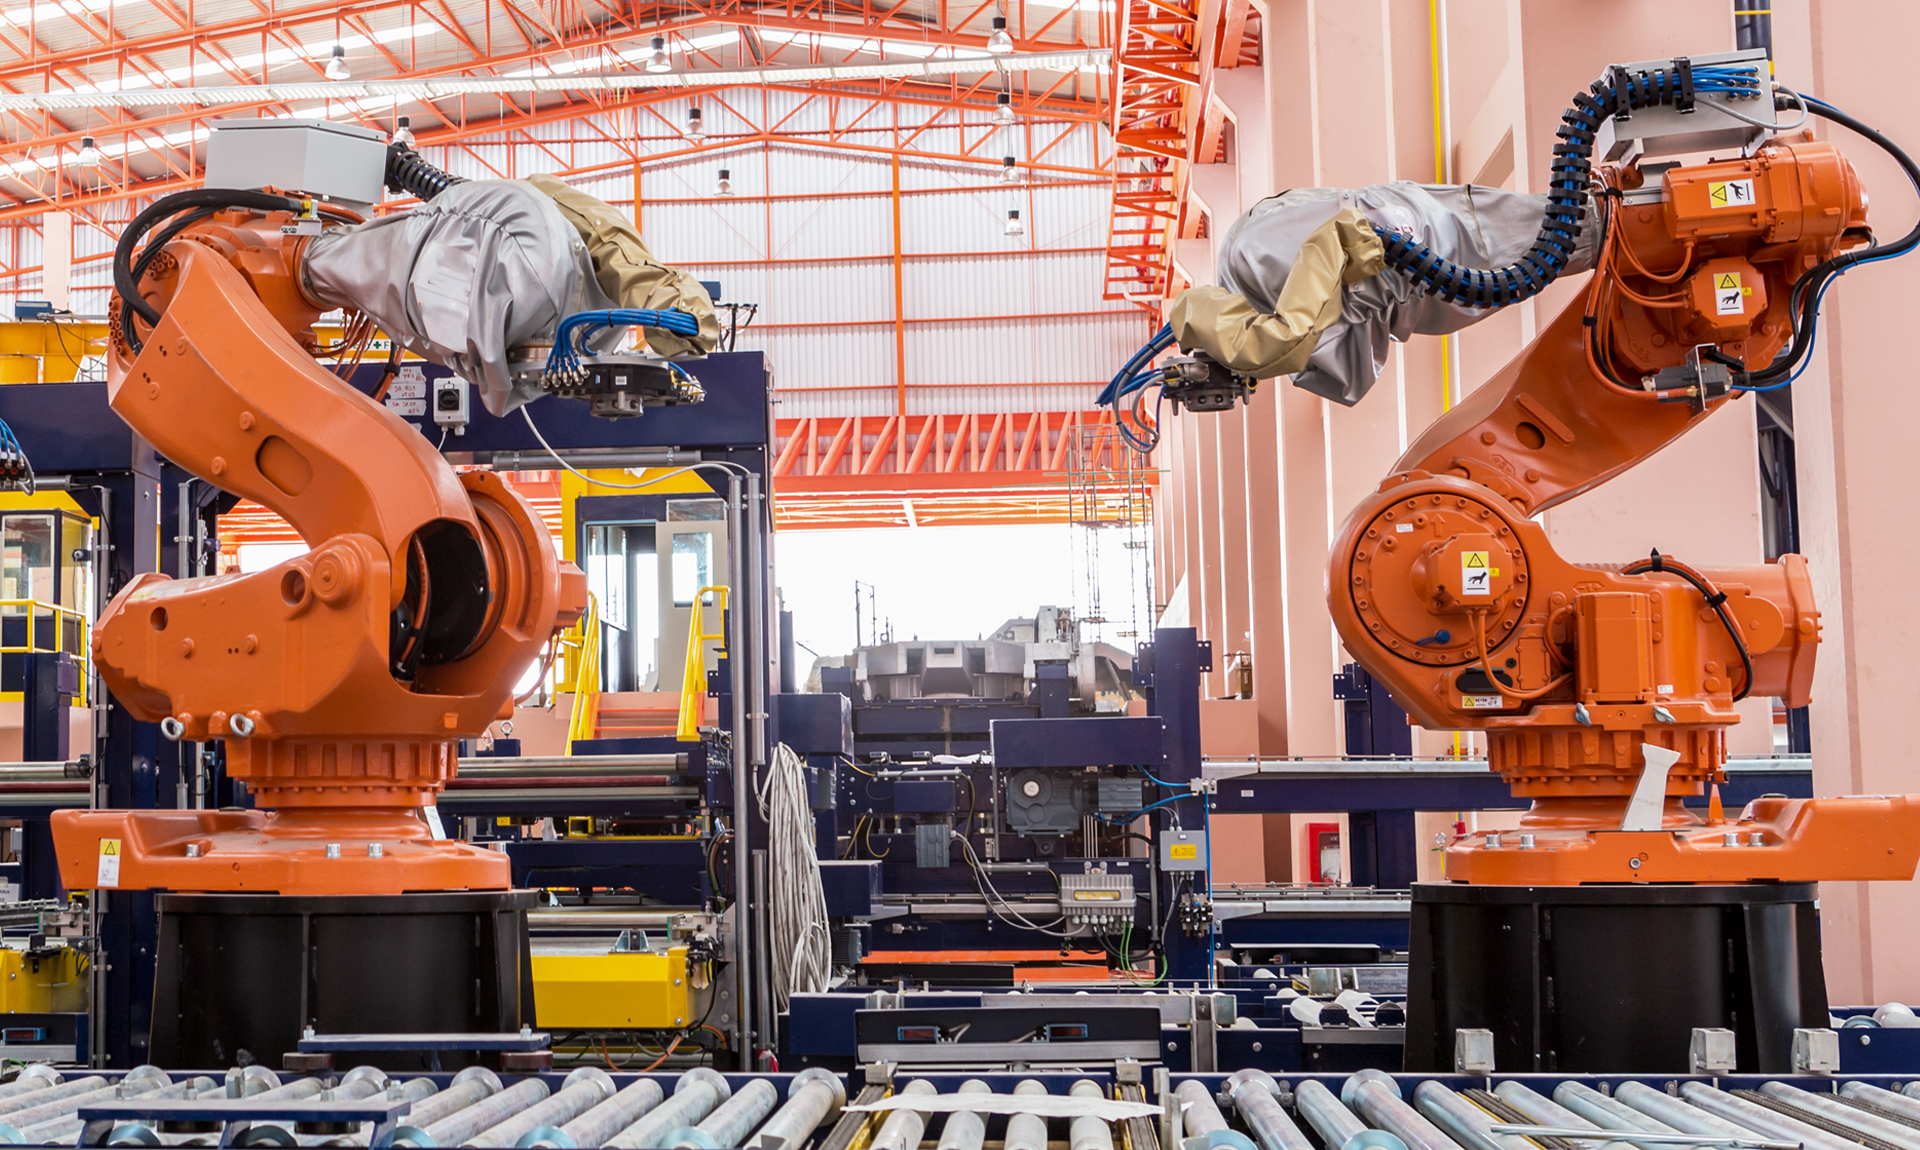 UK Manufacturing industry: image of robots